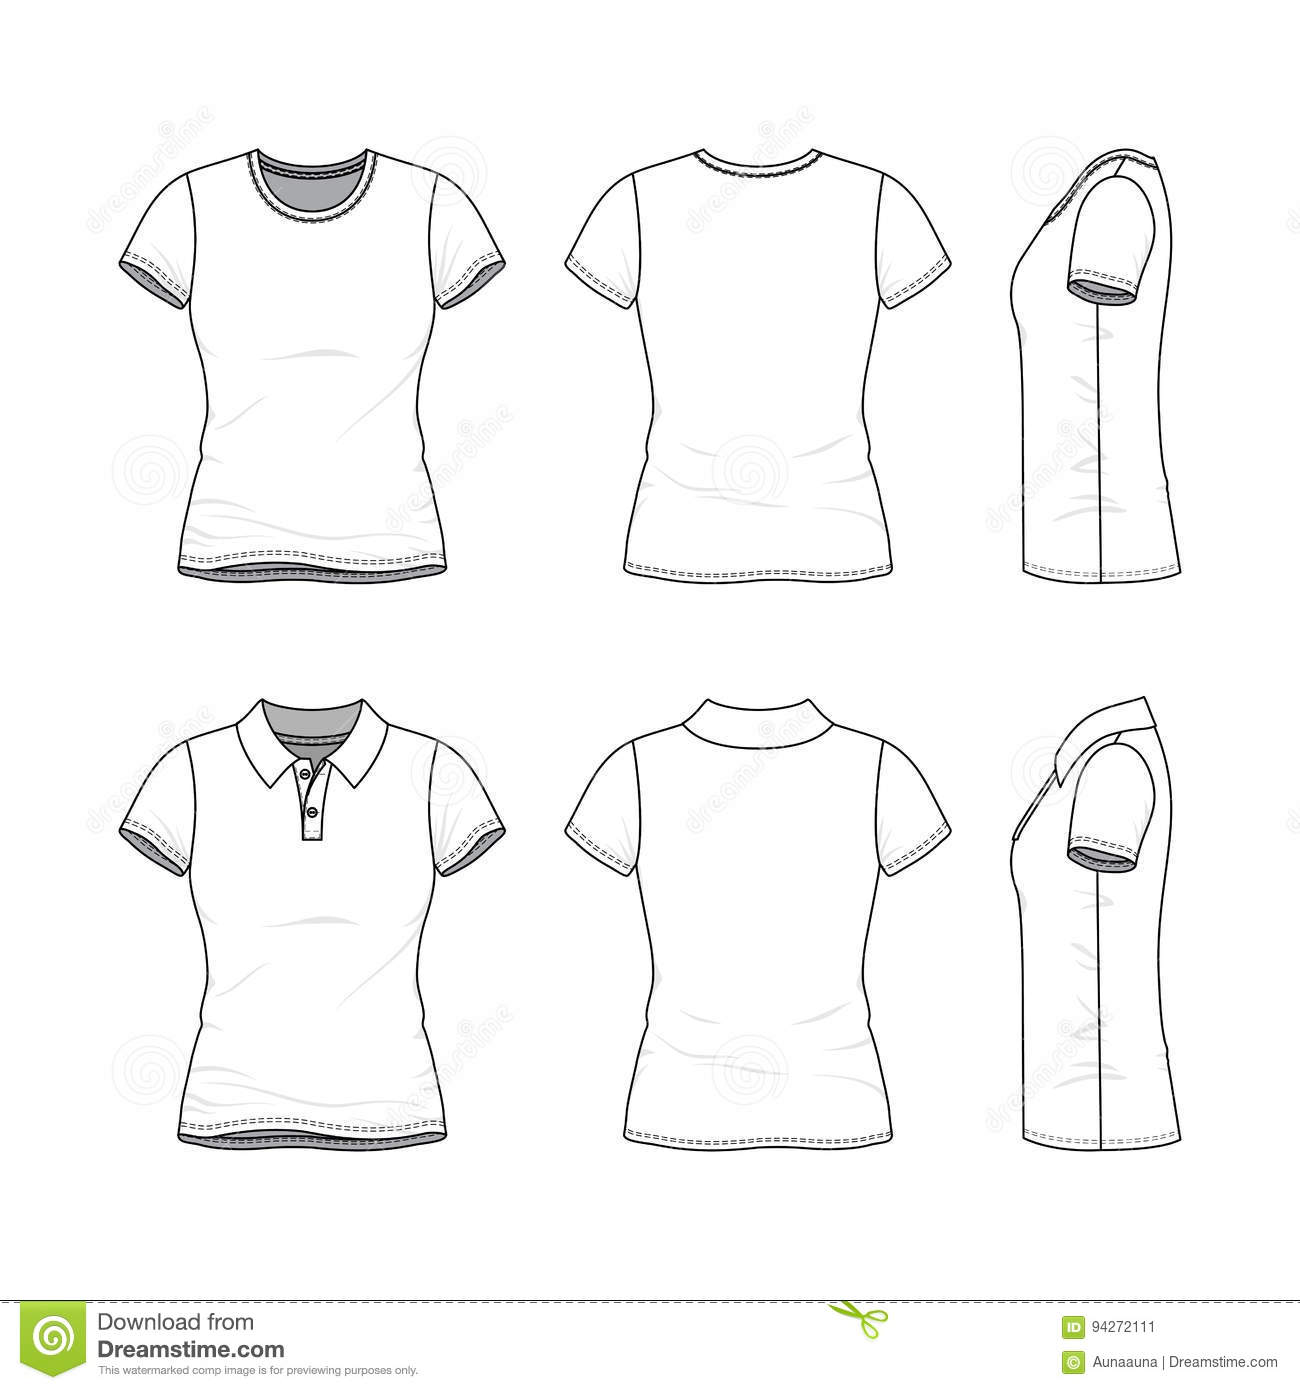 templates of female t shirt and polo shirt stock illustration